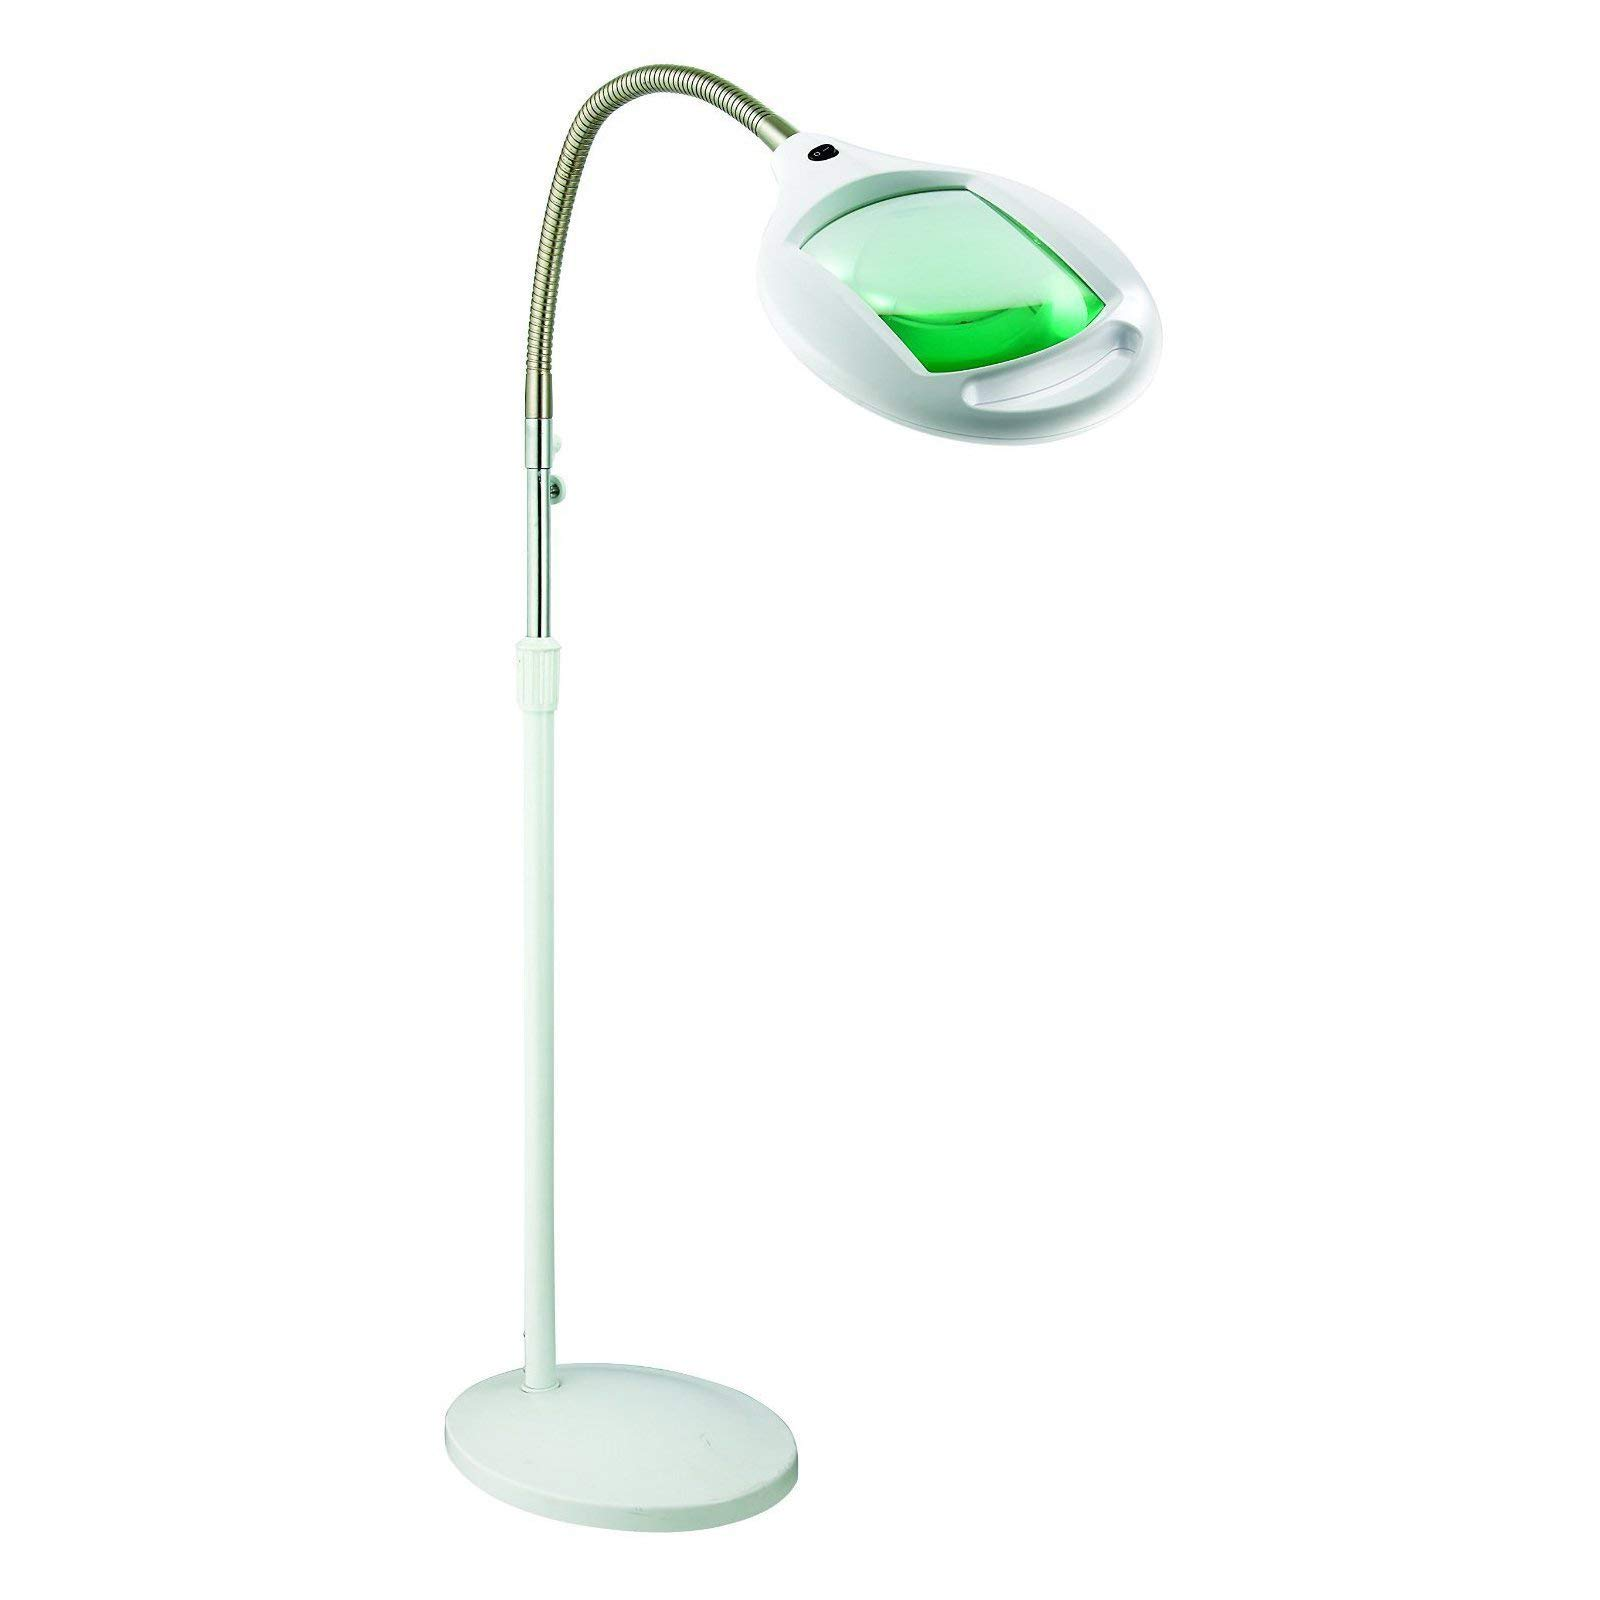 Brightech LightView Pro LED Magnifying Glass Floor Lamp - Magnifier With Bright Light For Reading, Tasks & Crafts - Height Adjustable Gooseneck Standing Lighting - White